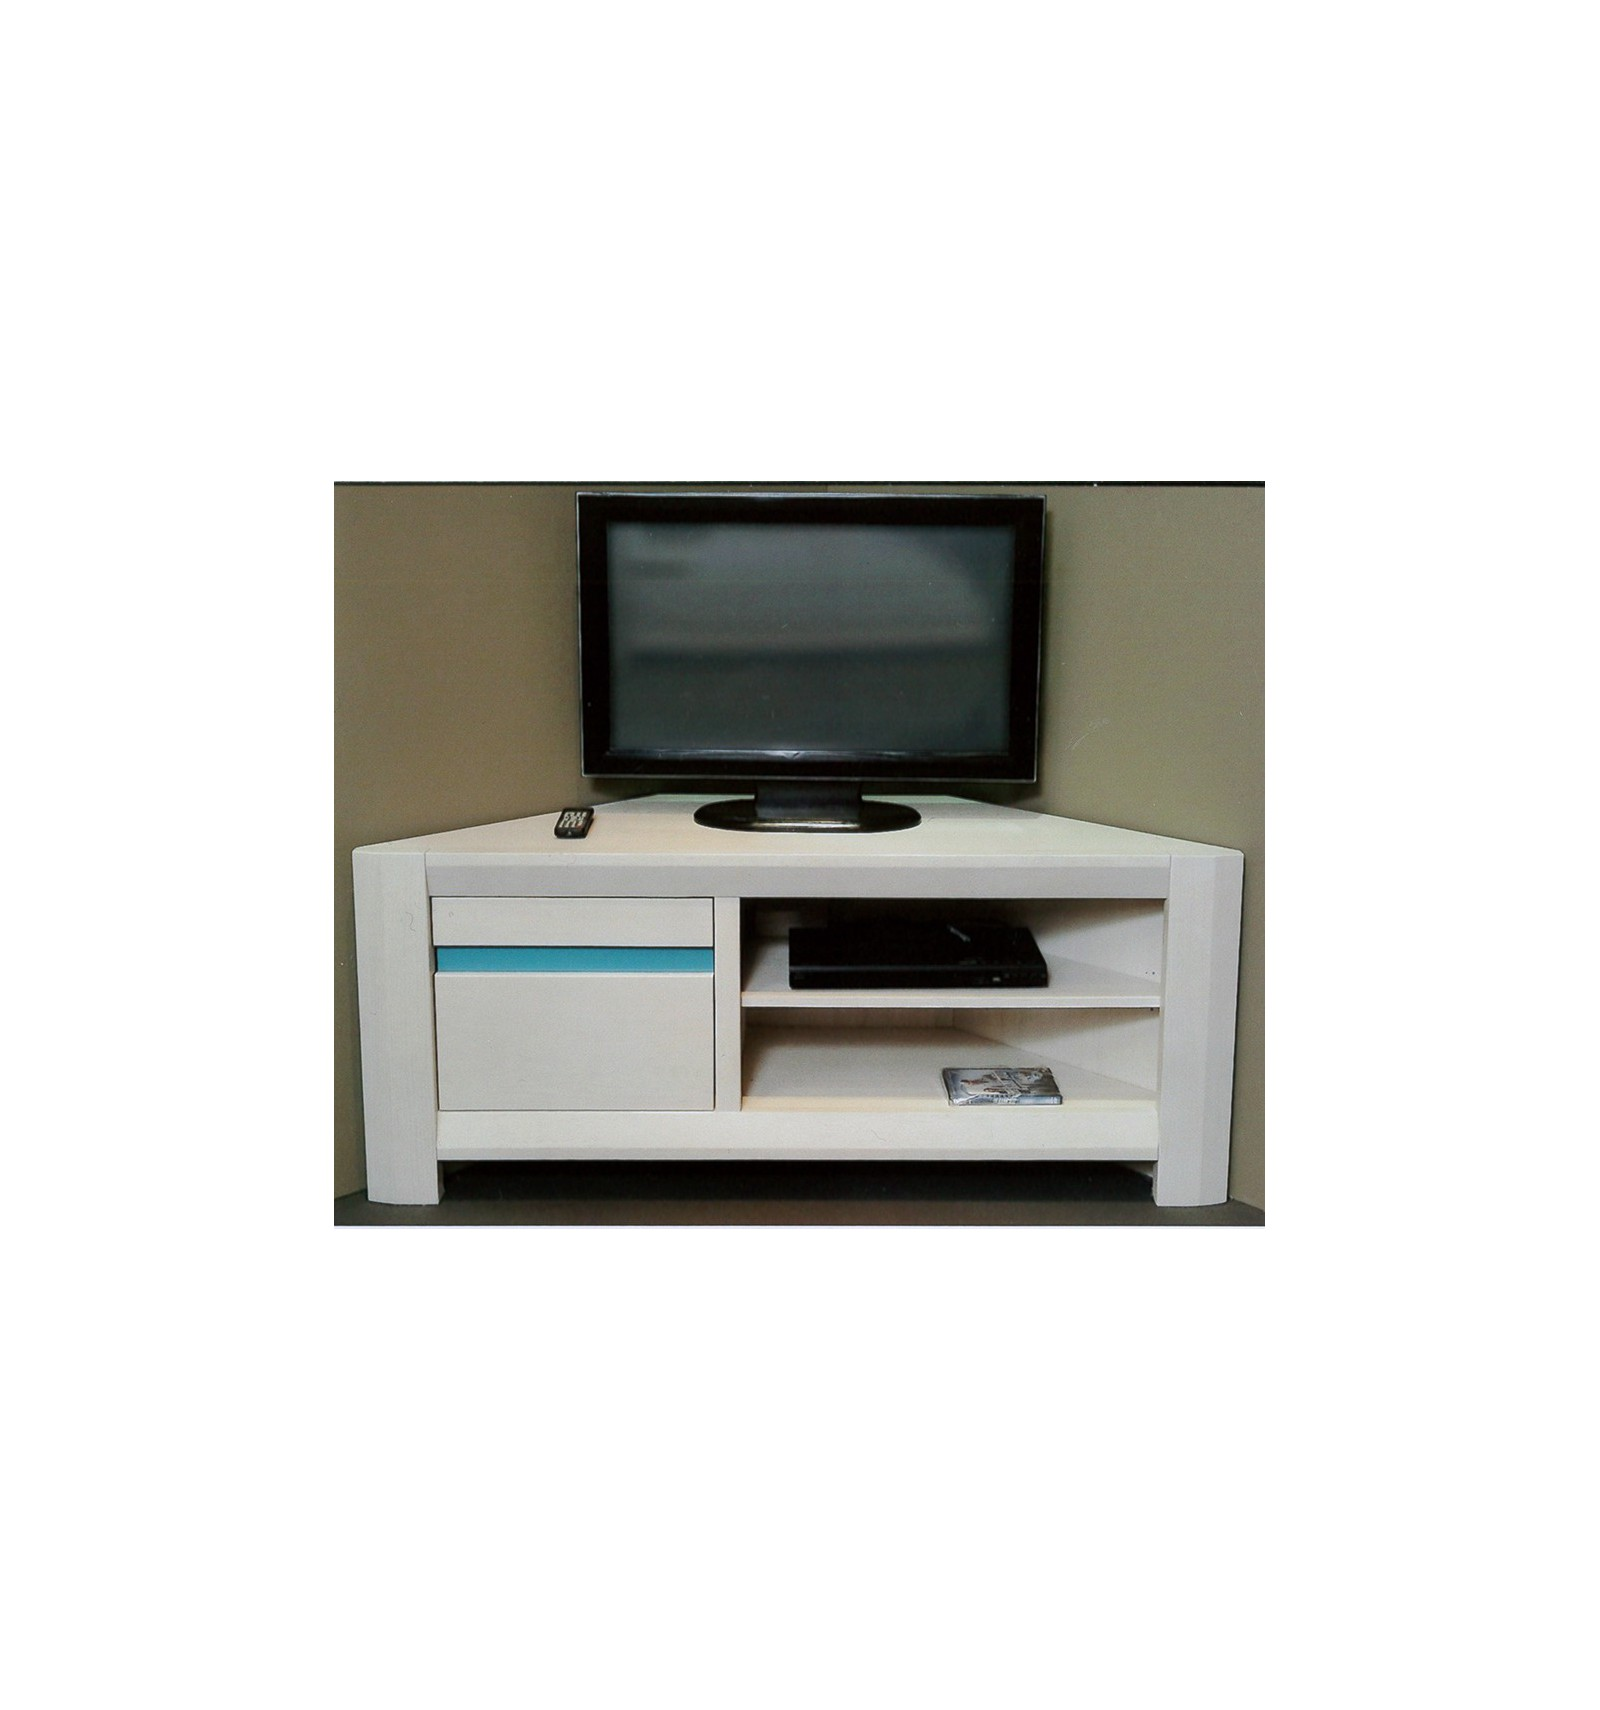 Meuble Tv D Angle Blanc Sellingstg Com # Meuble Tv Ikea Bous Blanc